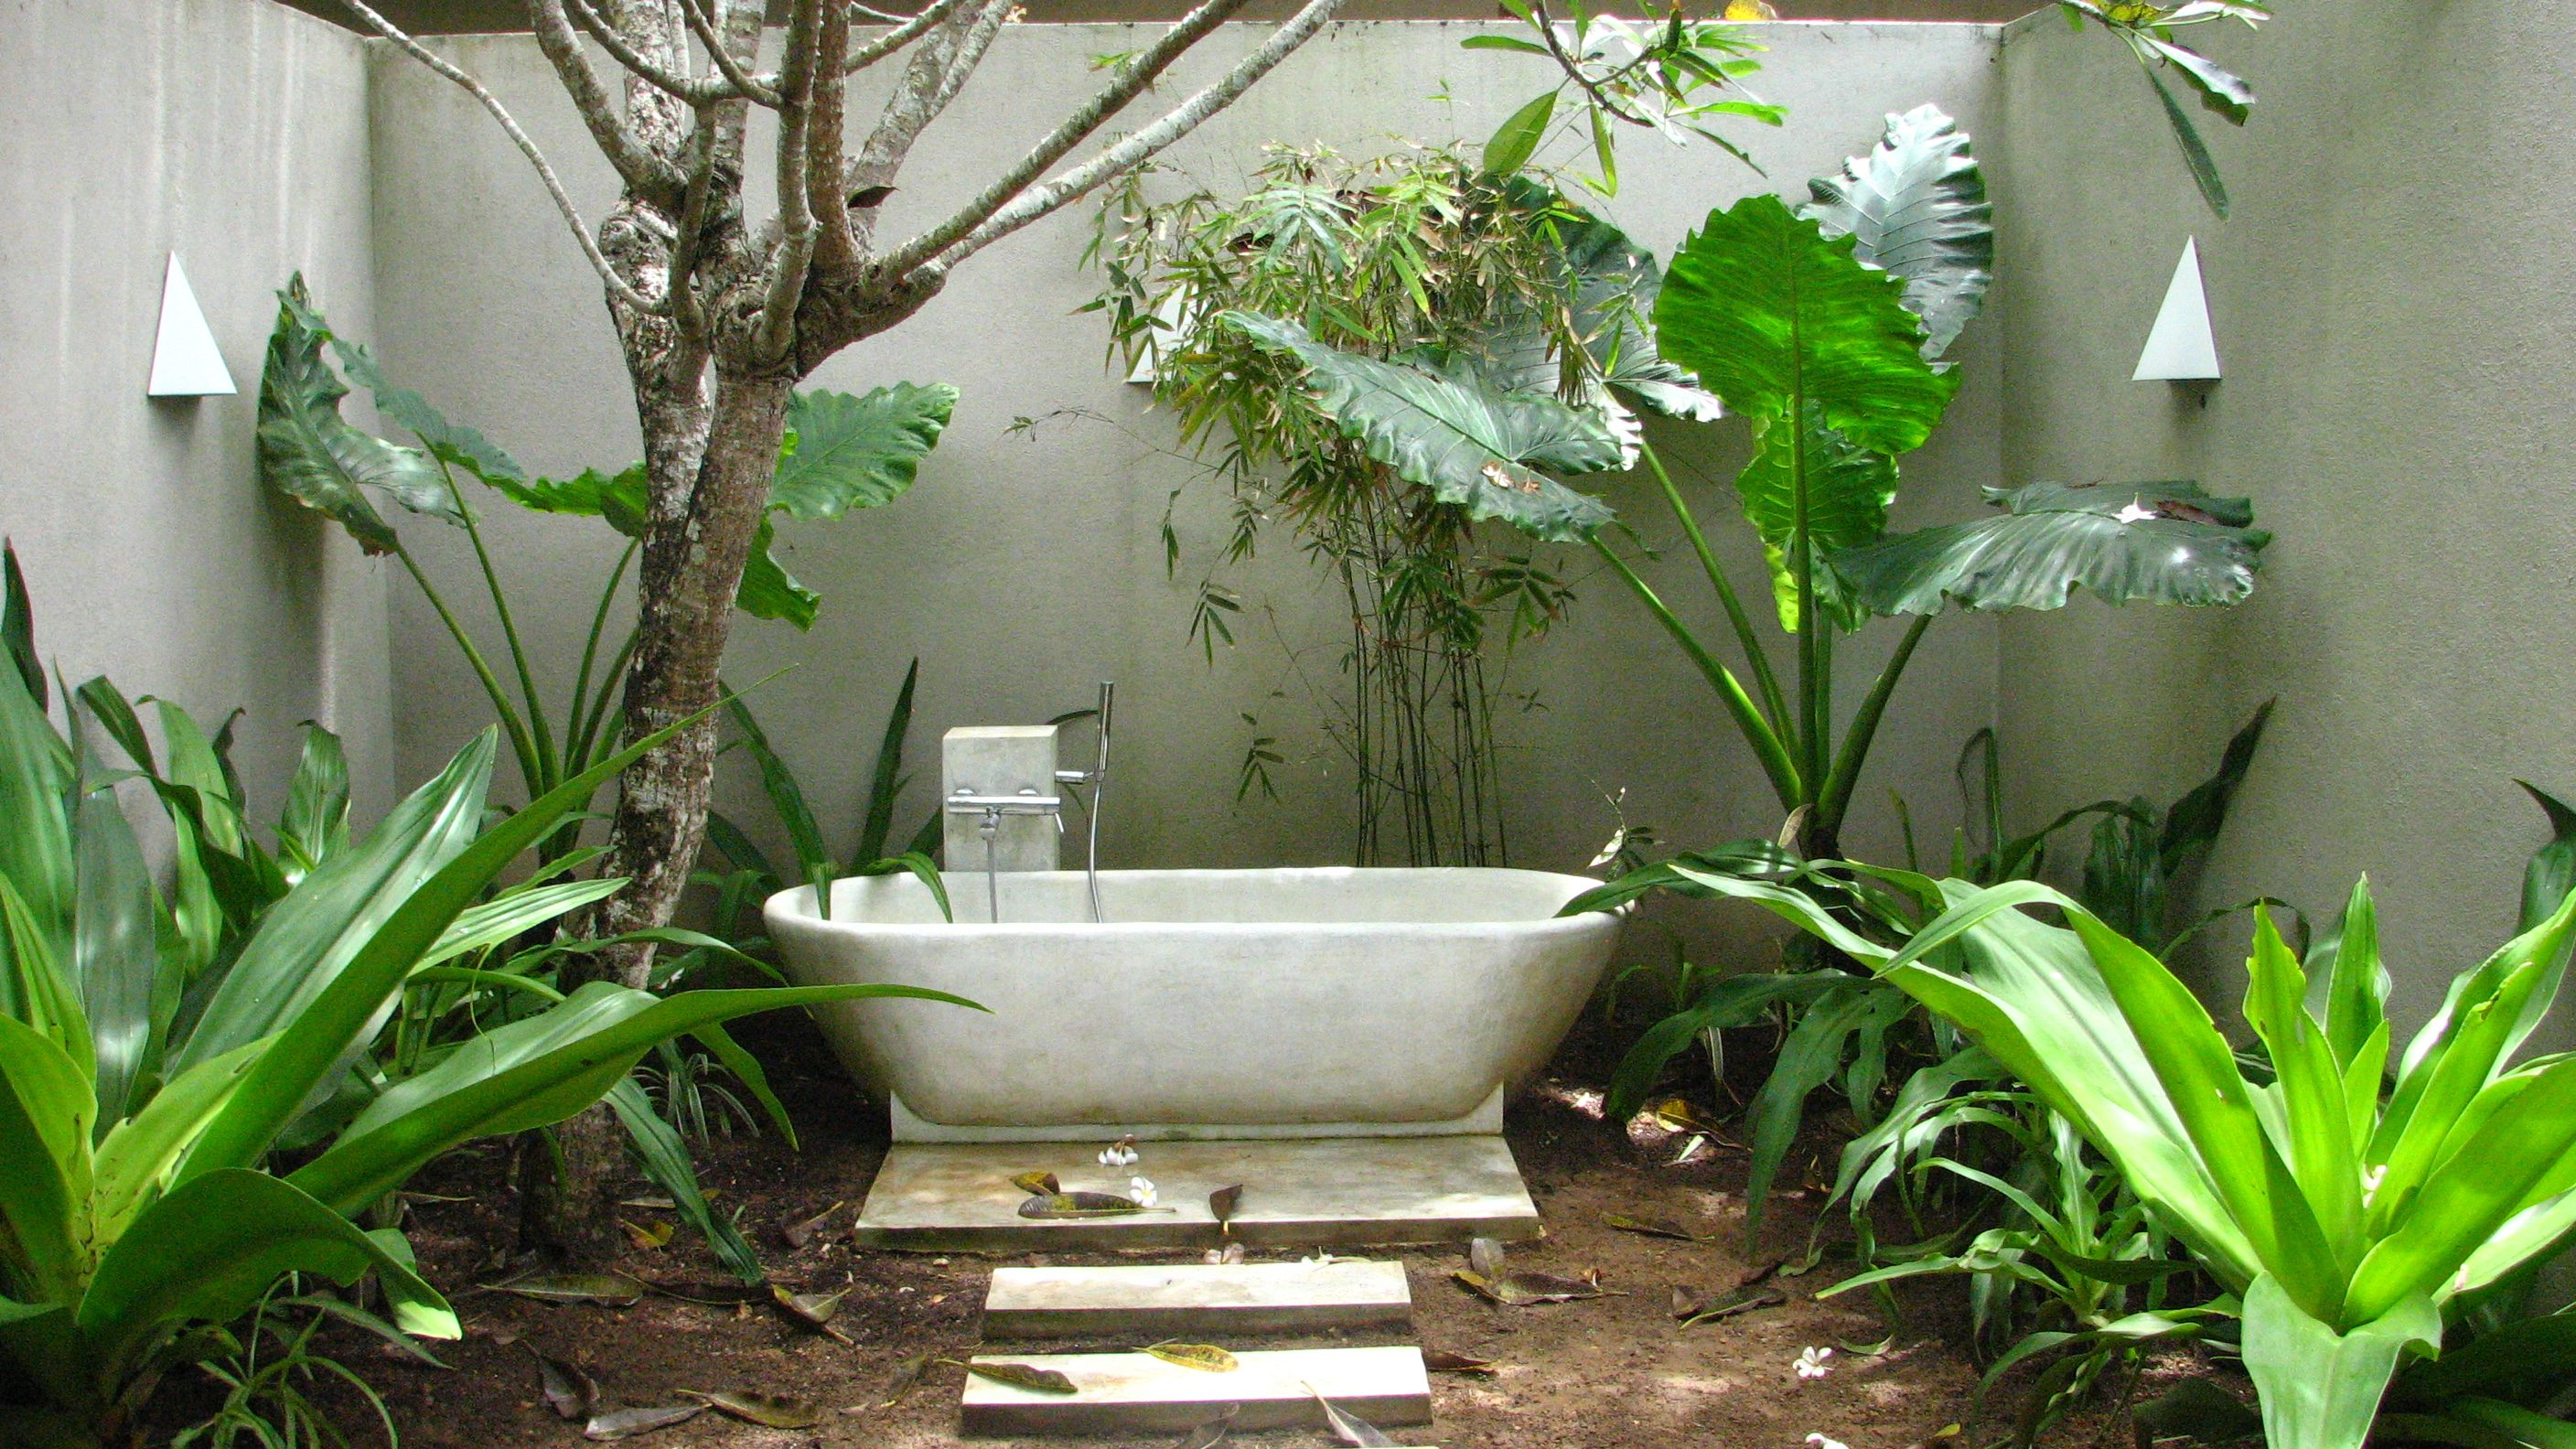 Outdoor Bathroom Outdoor Bathroom Design Outdoor Bathtub Outdoor Bathrooms